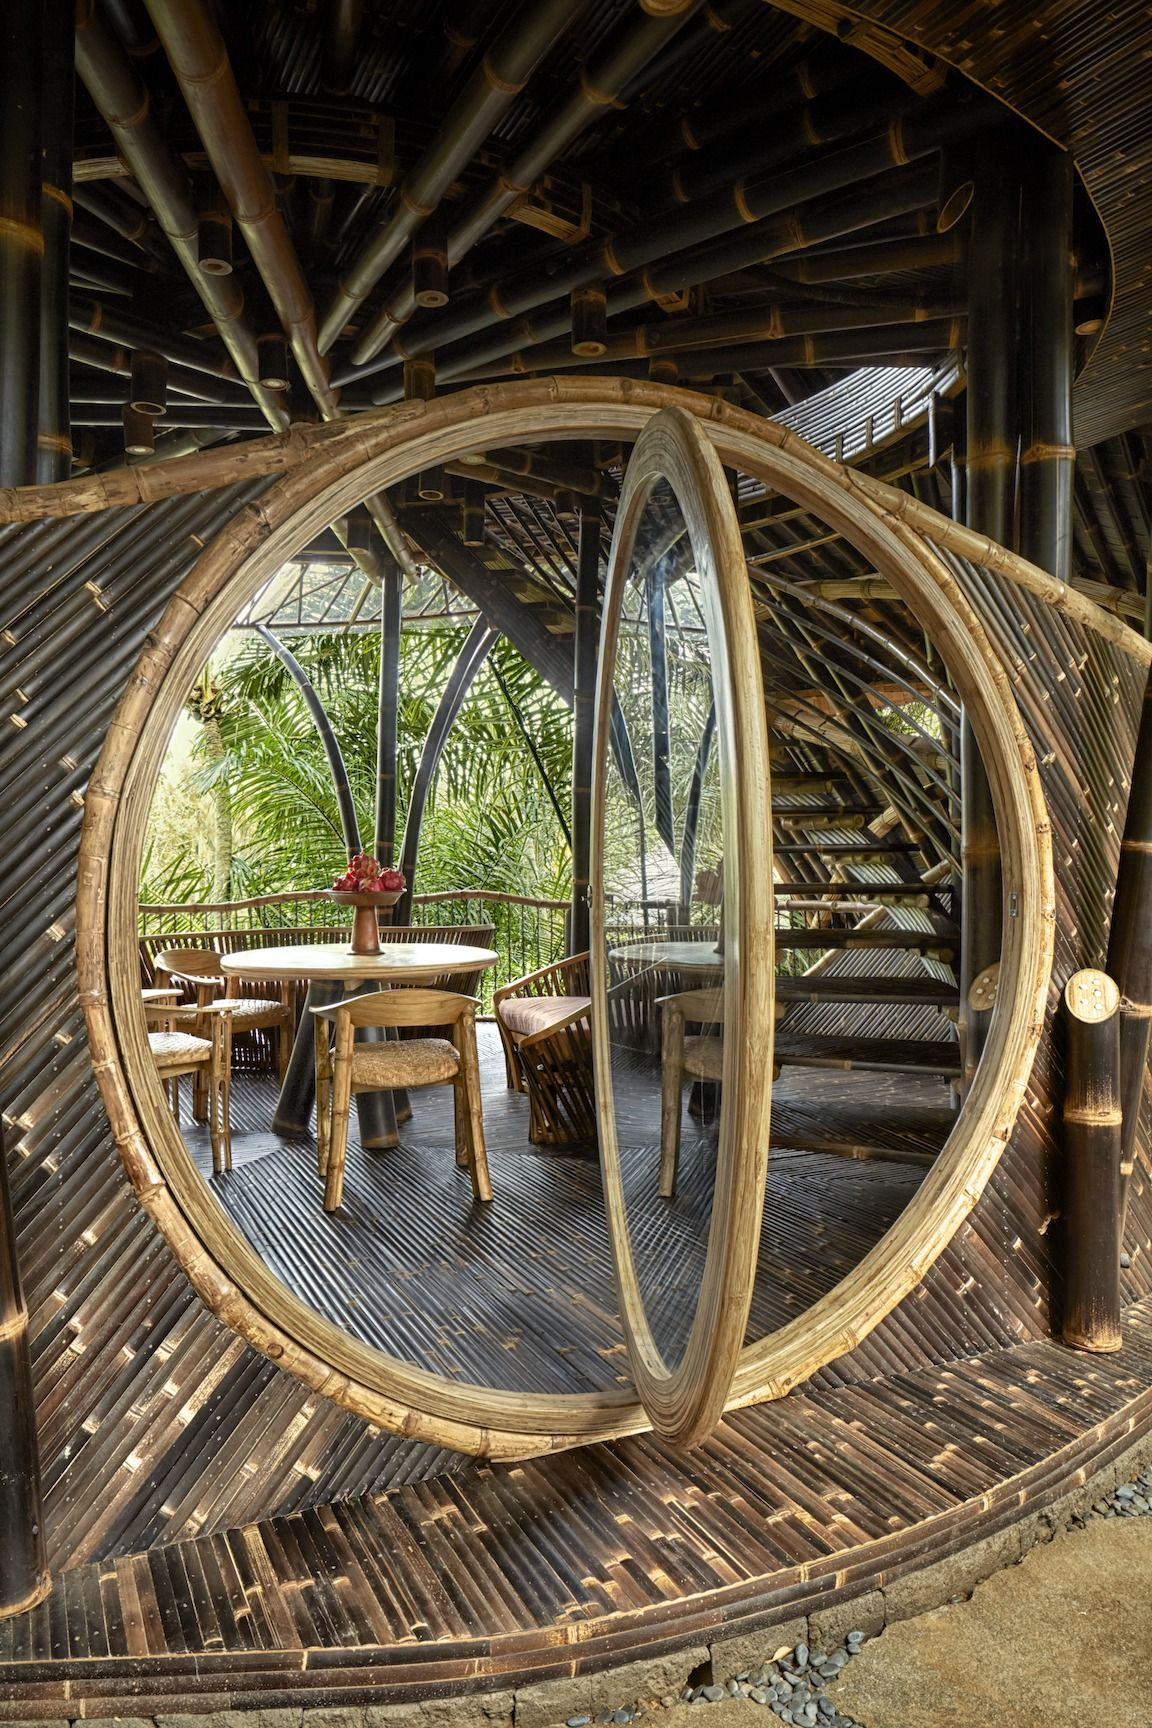 Tour this Fantastical Bamboo Villa in the Heart of the